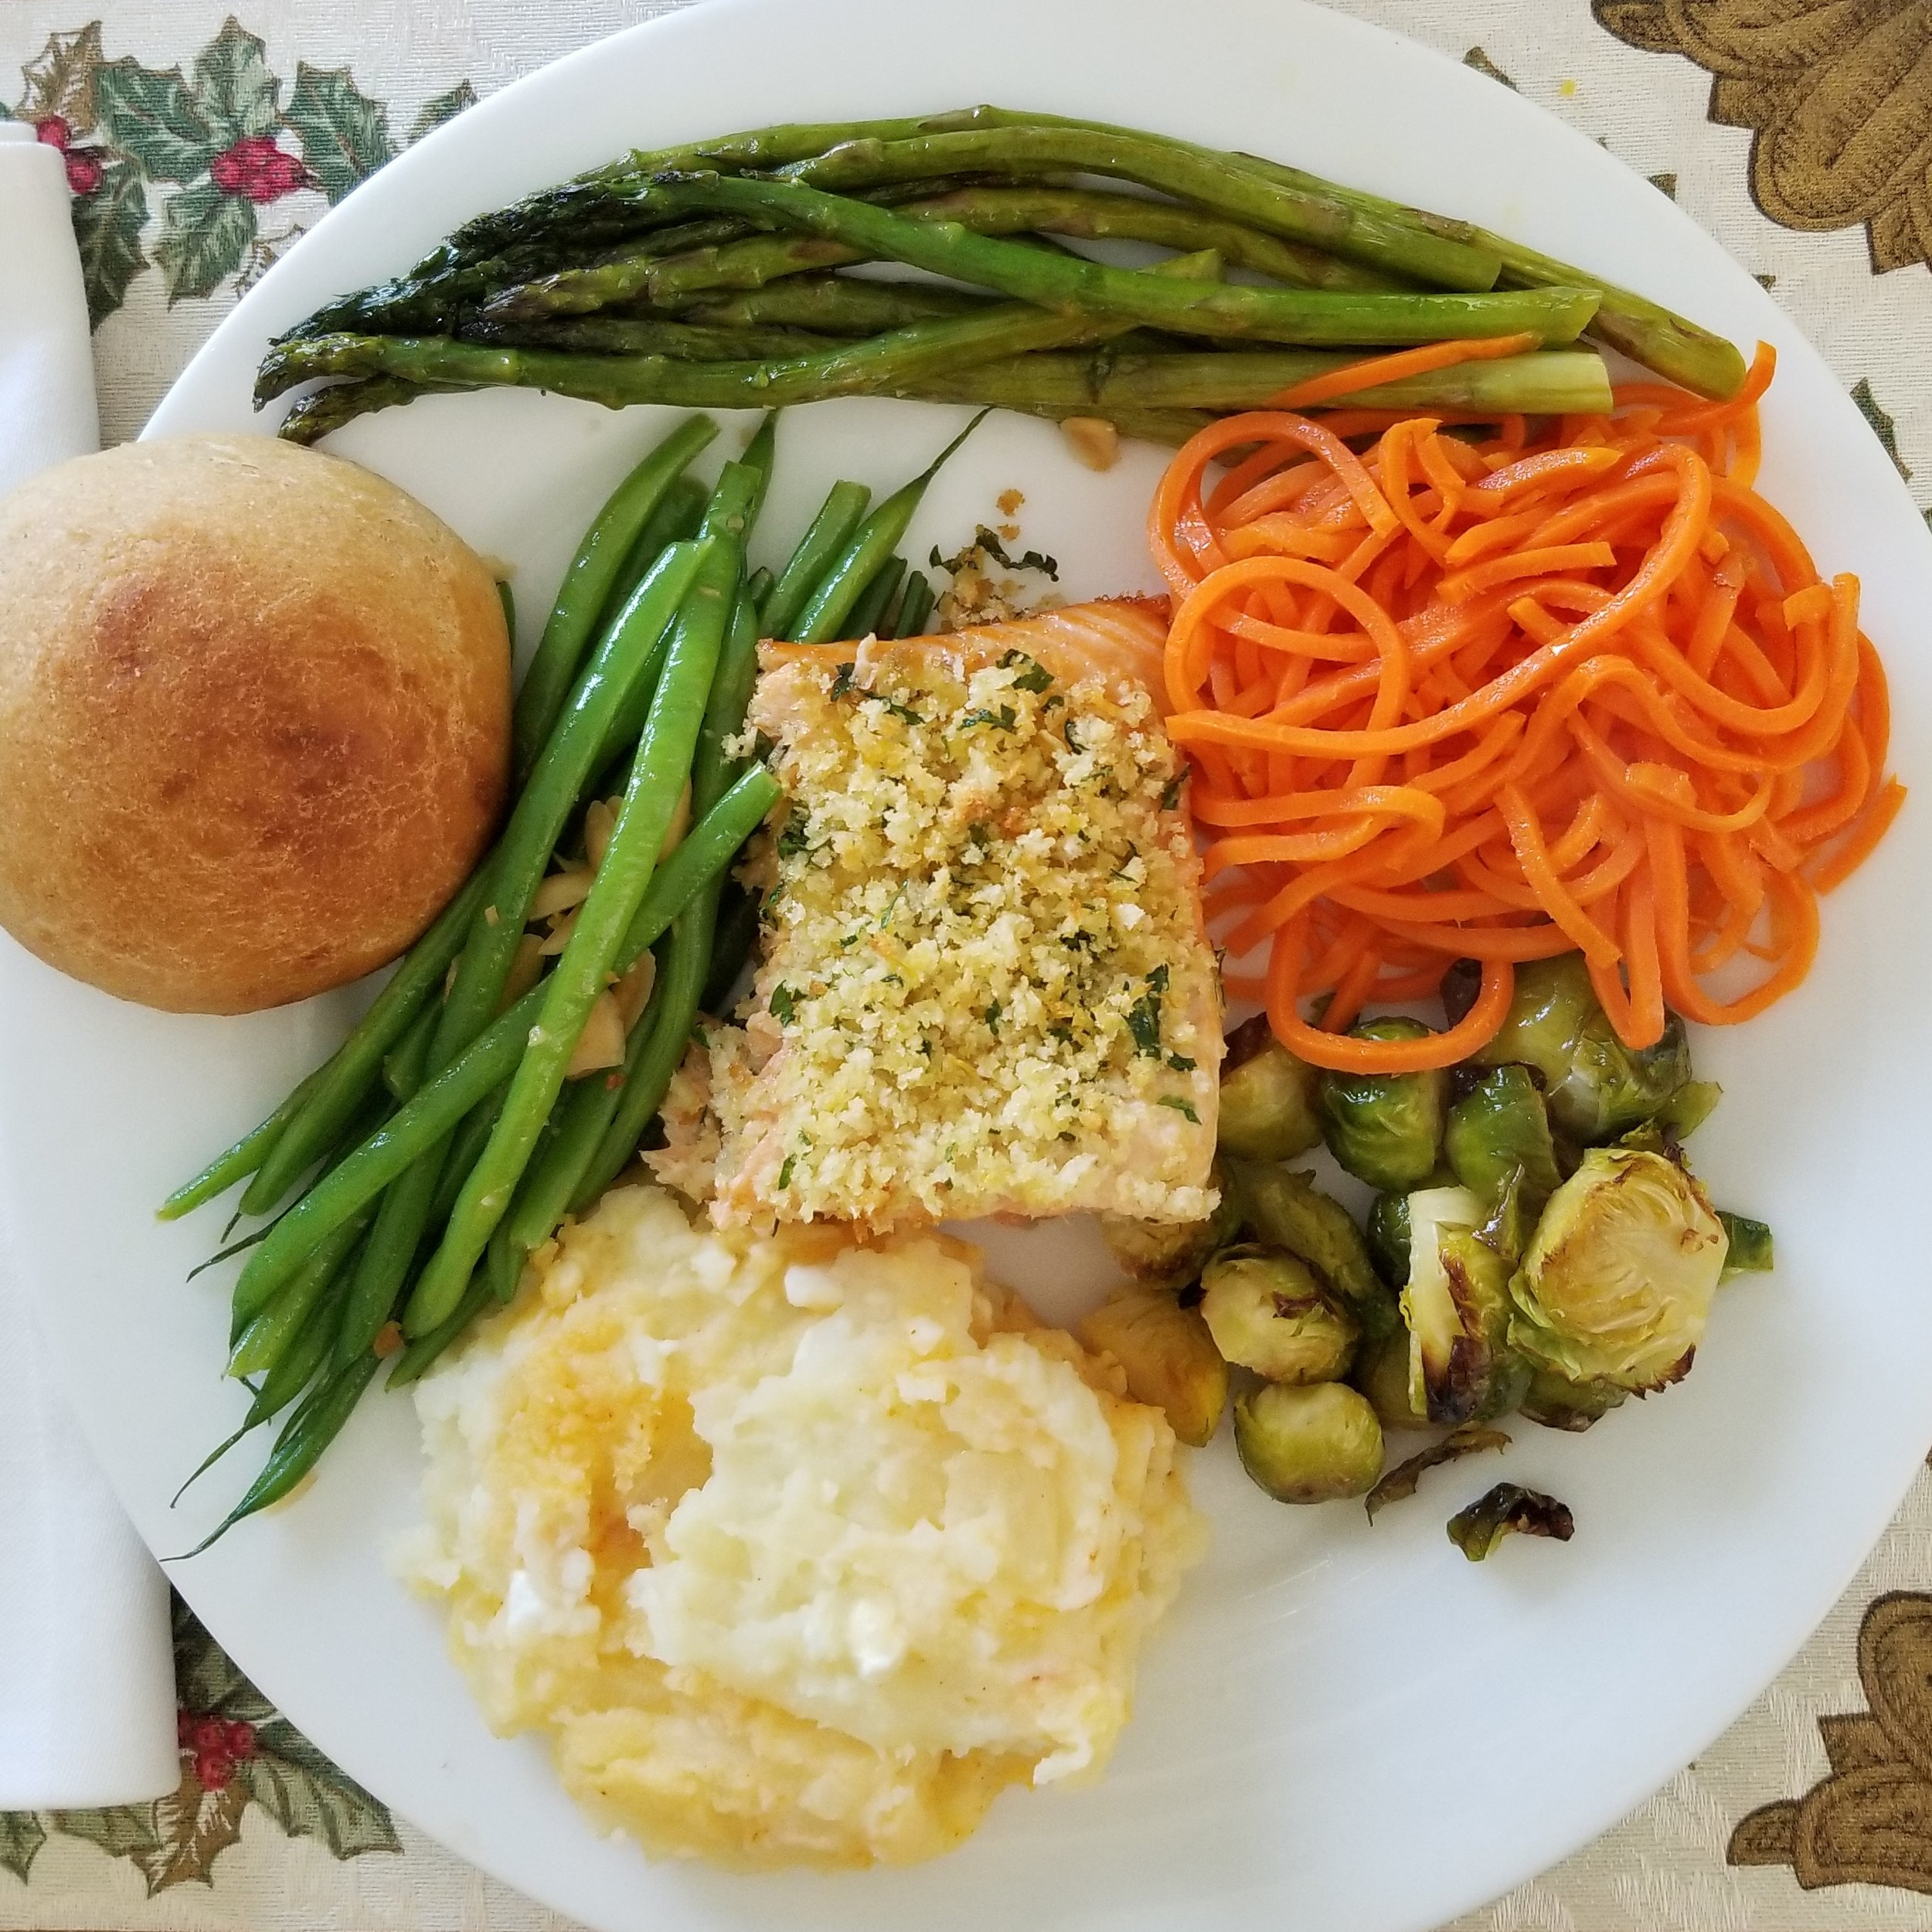 Salmon, Roasted Asparagus, Carrots, Green Beans, Cottage Potatoes, Brussels, & Homemade Bread - maybe not typical with all those non-starchy veggies, but definitely healthy and balanced.